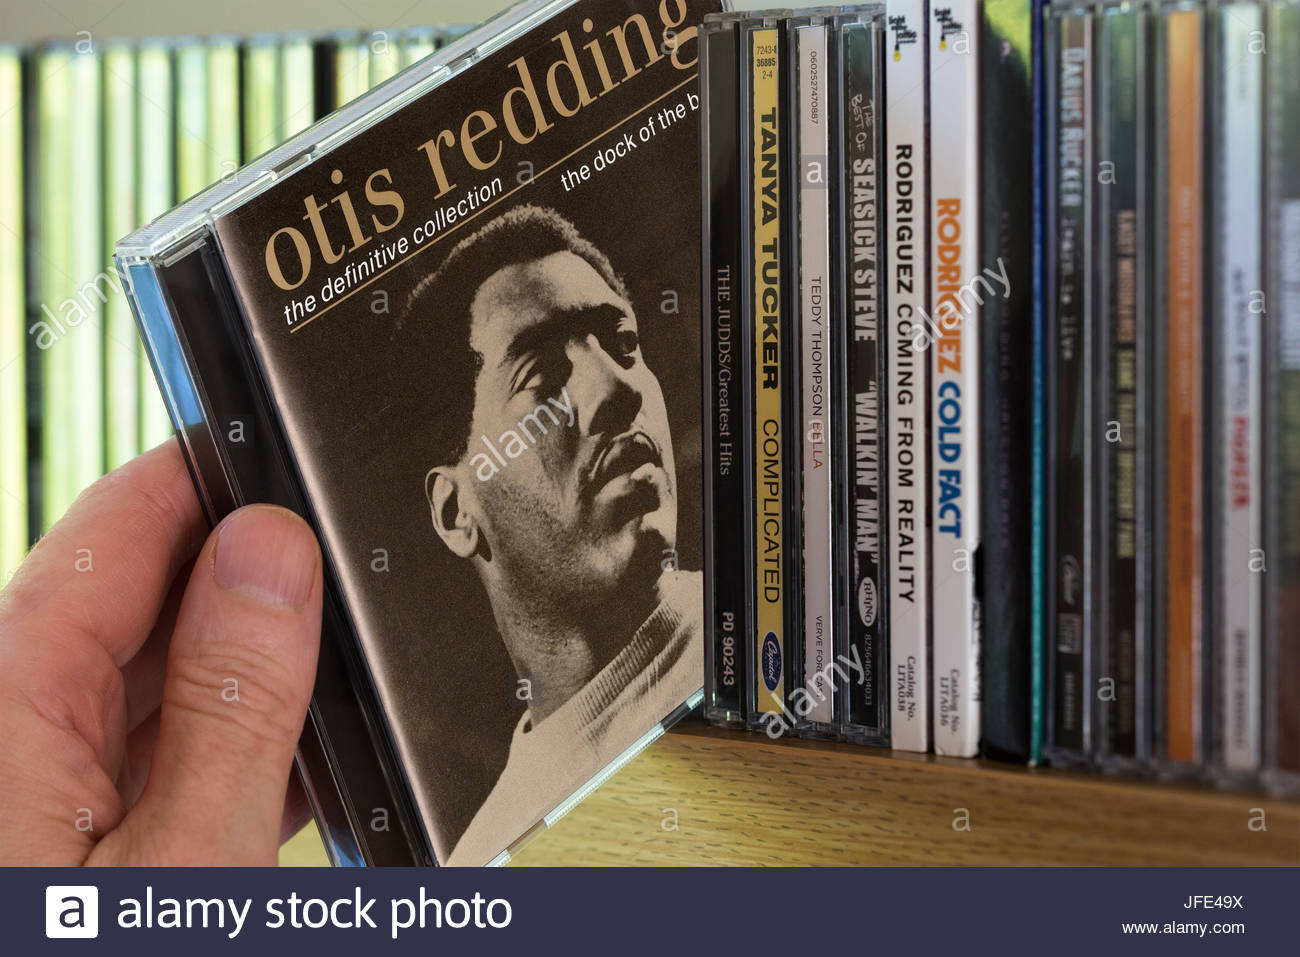 The Dock Of The Bay, Otis Redding Greatest Hits CD being chosen from a shelf of other CD's, Dorset, England - Stock Image